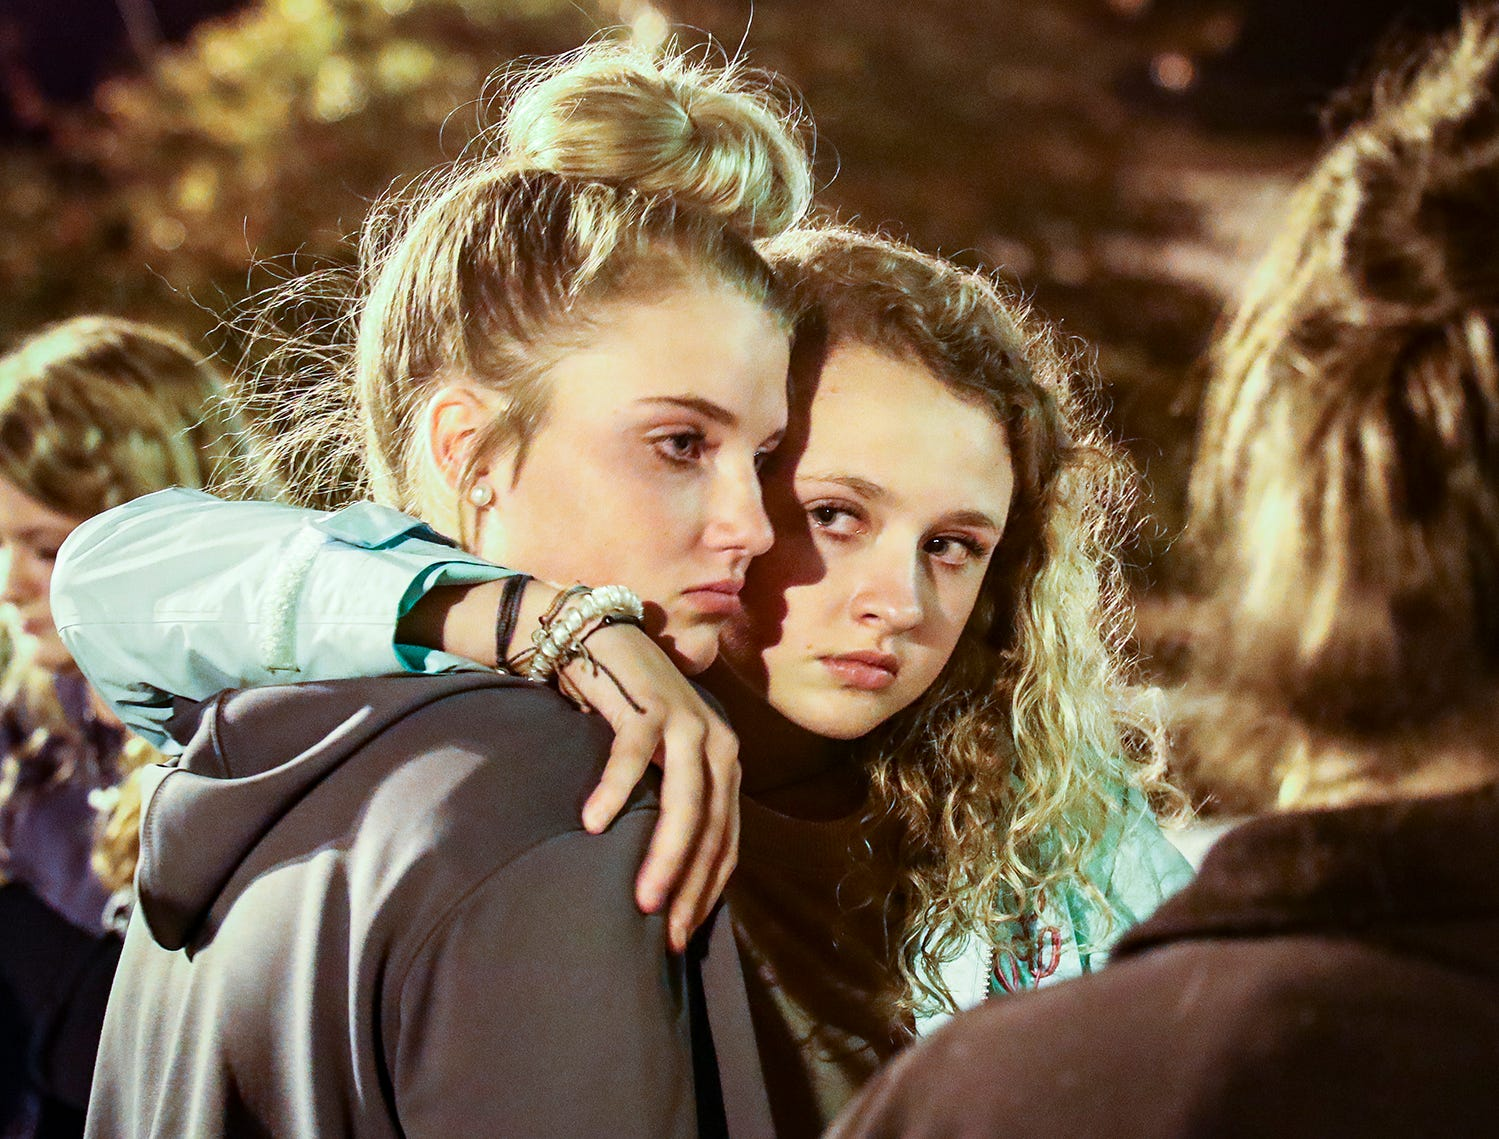 Makayla Garber and Zoe Ellis hold each other close during a vigil in memory of Angie Walker. Walker, 41, was killed in and EF-2 tornado in Christiana, Tenn., on Tuesday, Nov. 6, 2018.